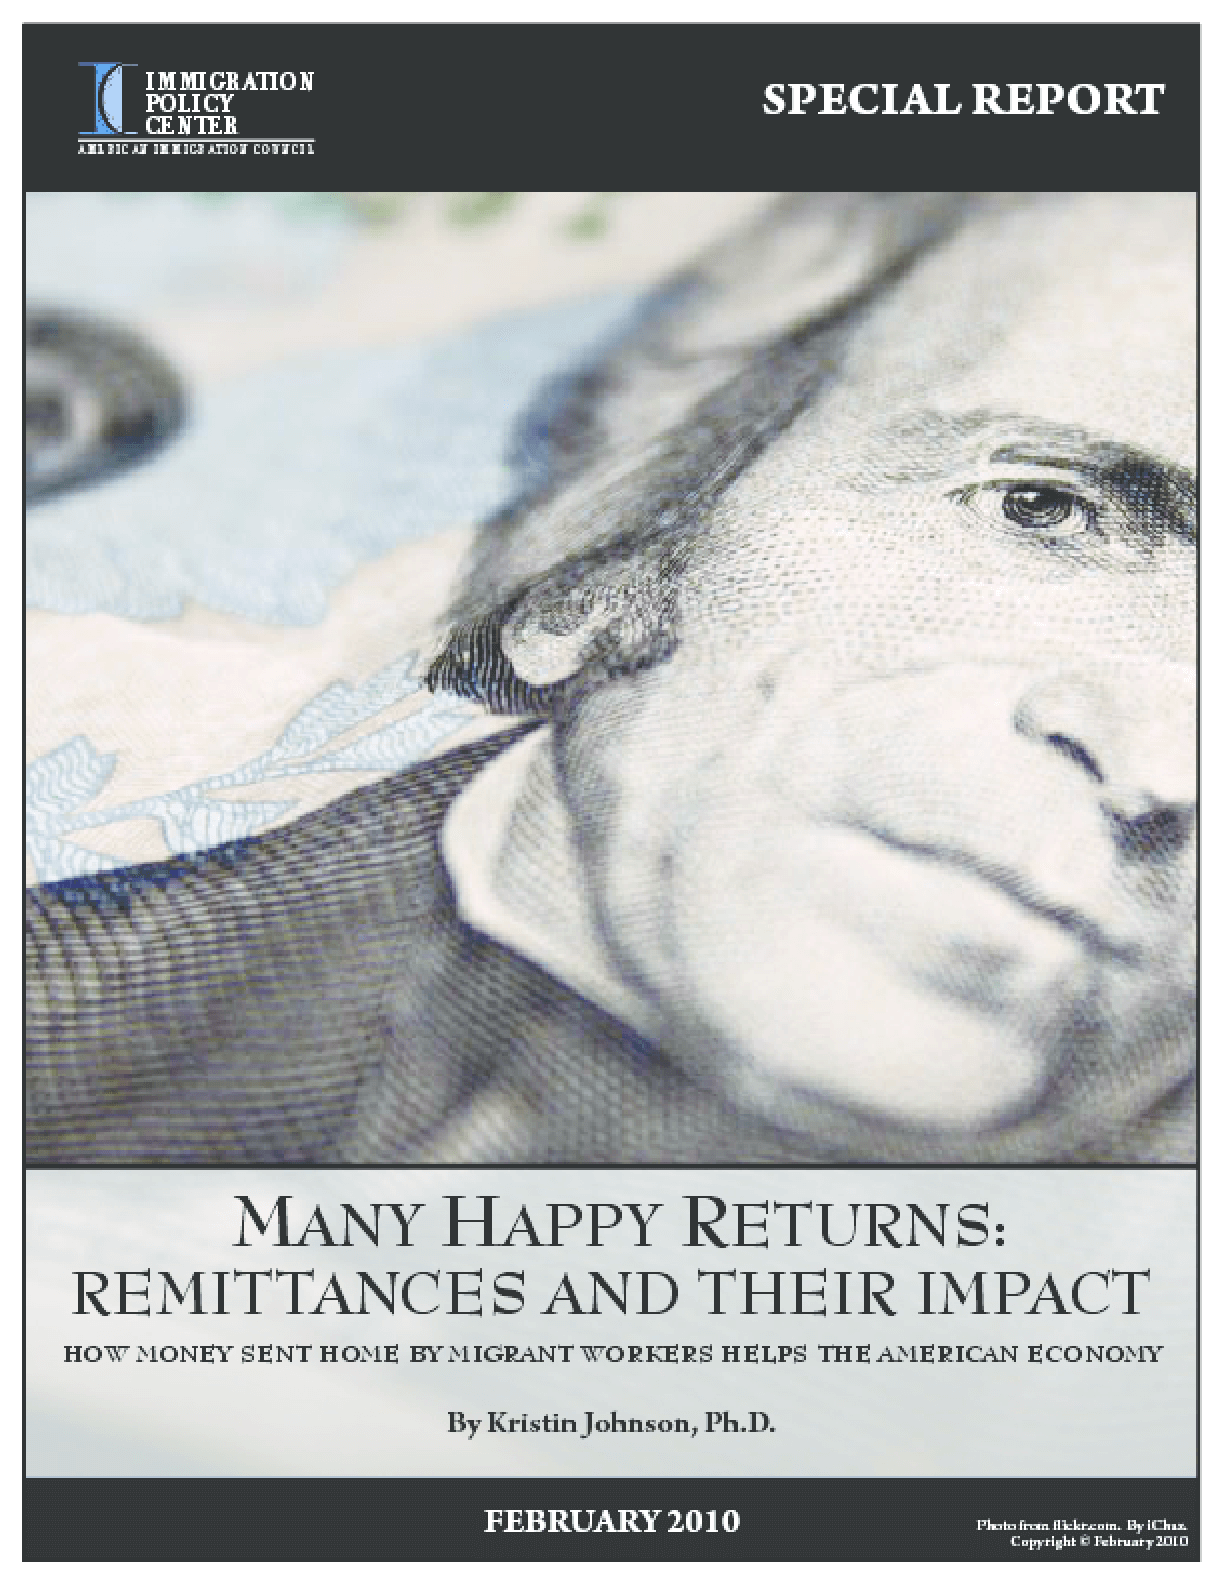 Many Happy Returns: Remittances and their Impact